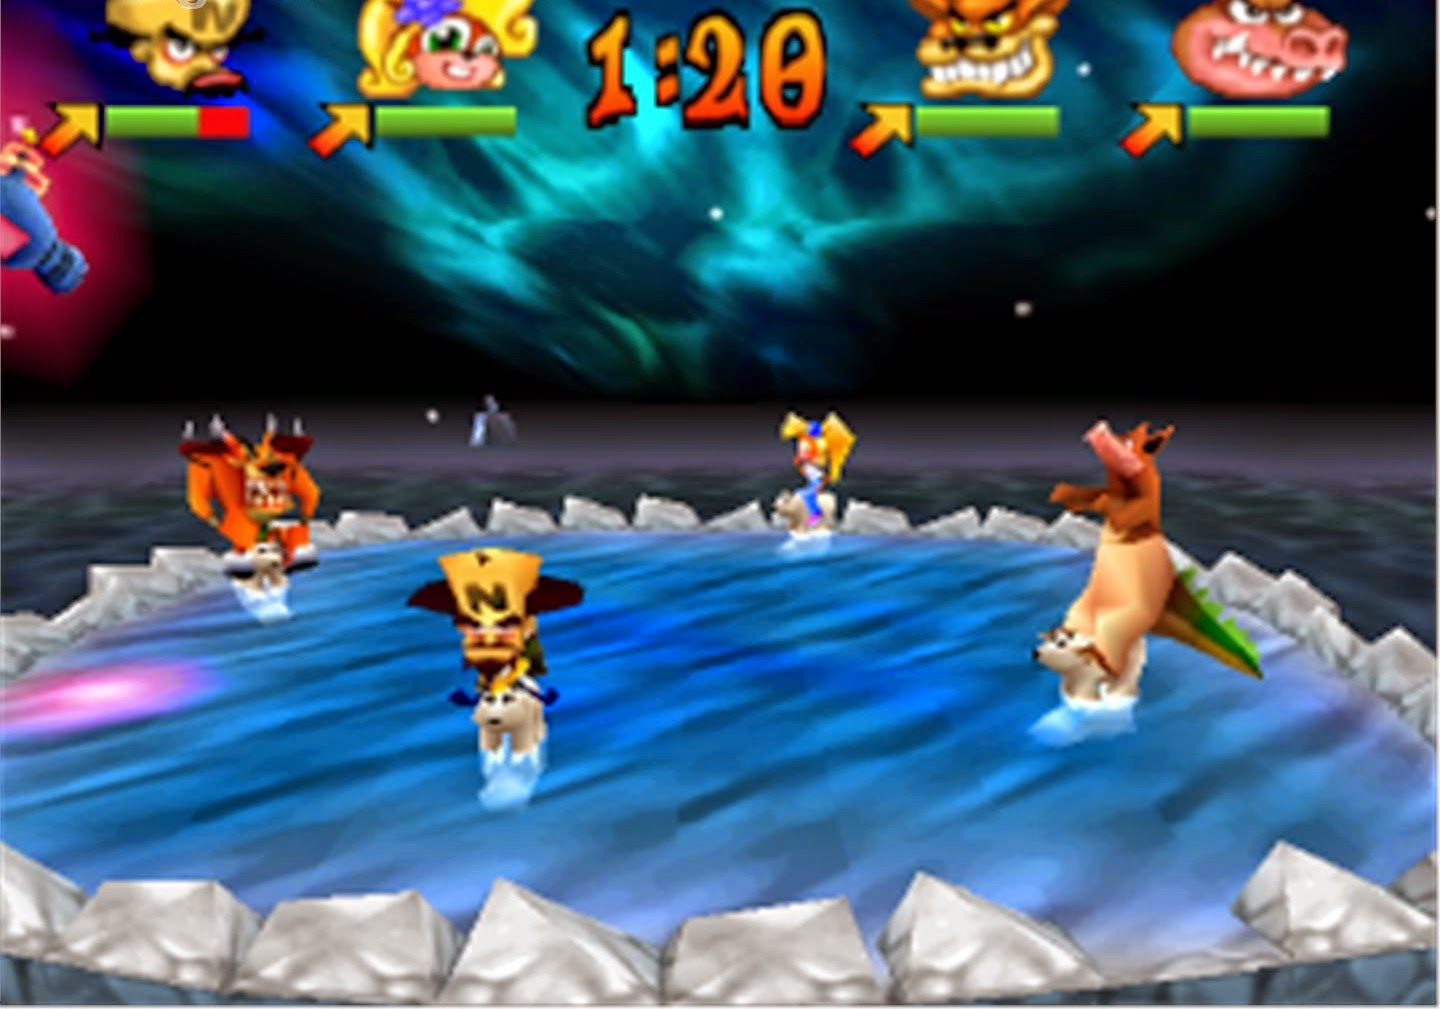 Crash-Bash-Game-Screenshot-2.jpg